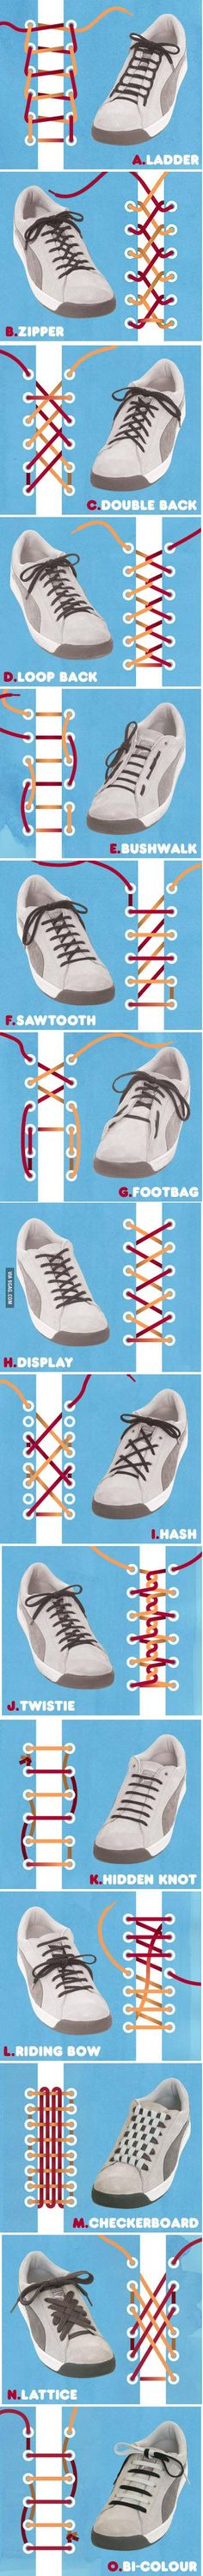 The best DIY projects & DIY ideas and tutorials: sewing, paper craft, DIY. Ideas About DIY Life Hacks & Crafts 2017 / 2018 Who knew there were so many different ways to tie your shoes? Ways To Tie Shoelaces, Tie Shoes, Shoes Men, Your Shoes, Shoes Sneakers, Just In Case, Helpful Hints, Life Hacks, Creations